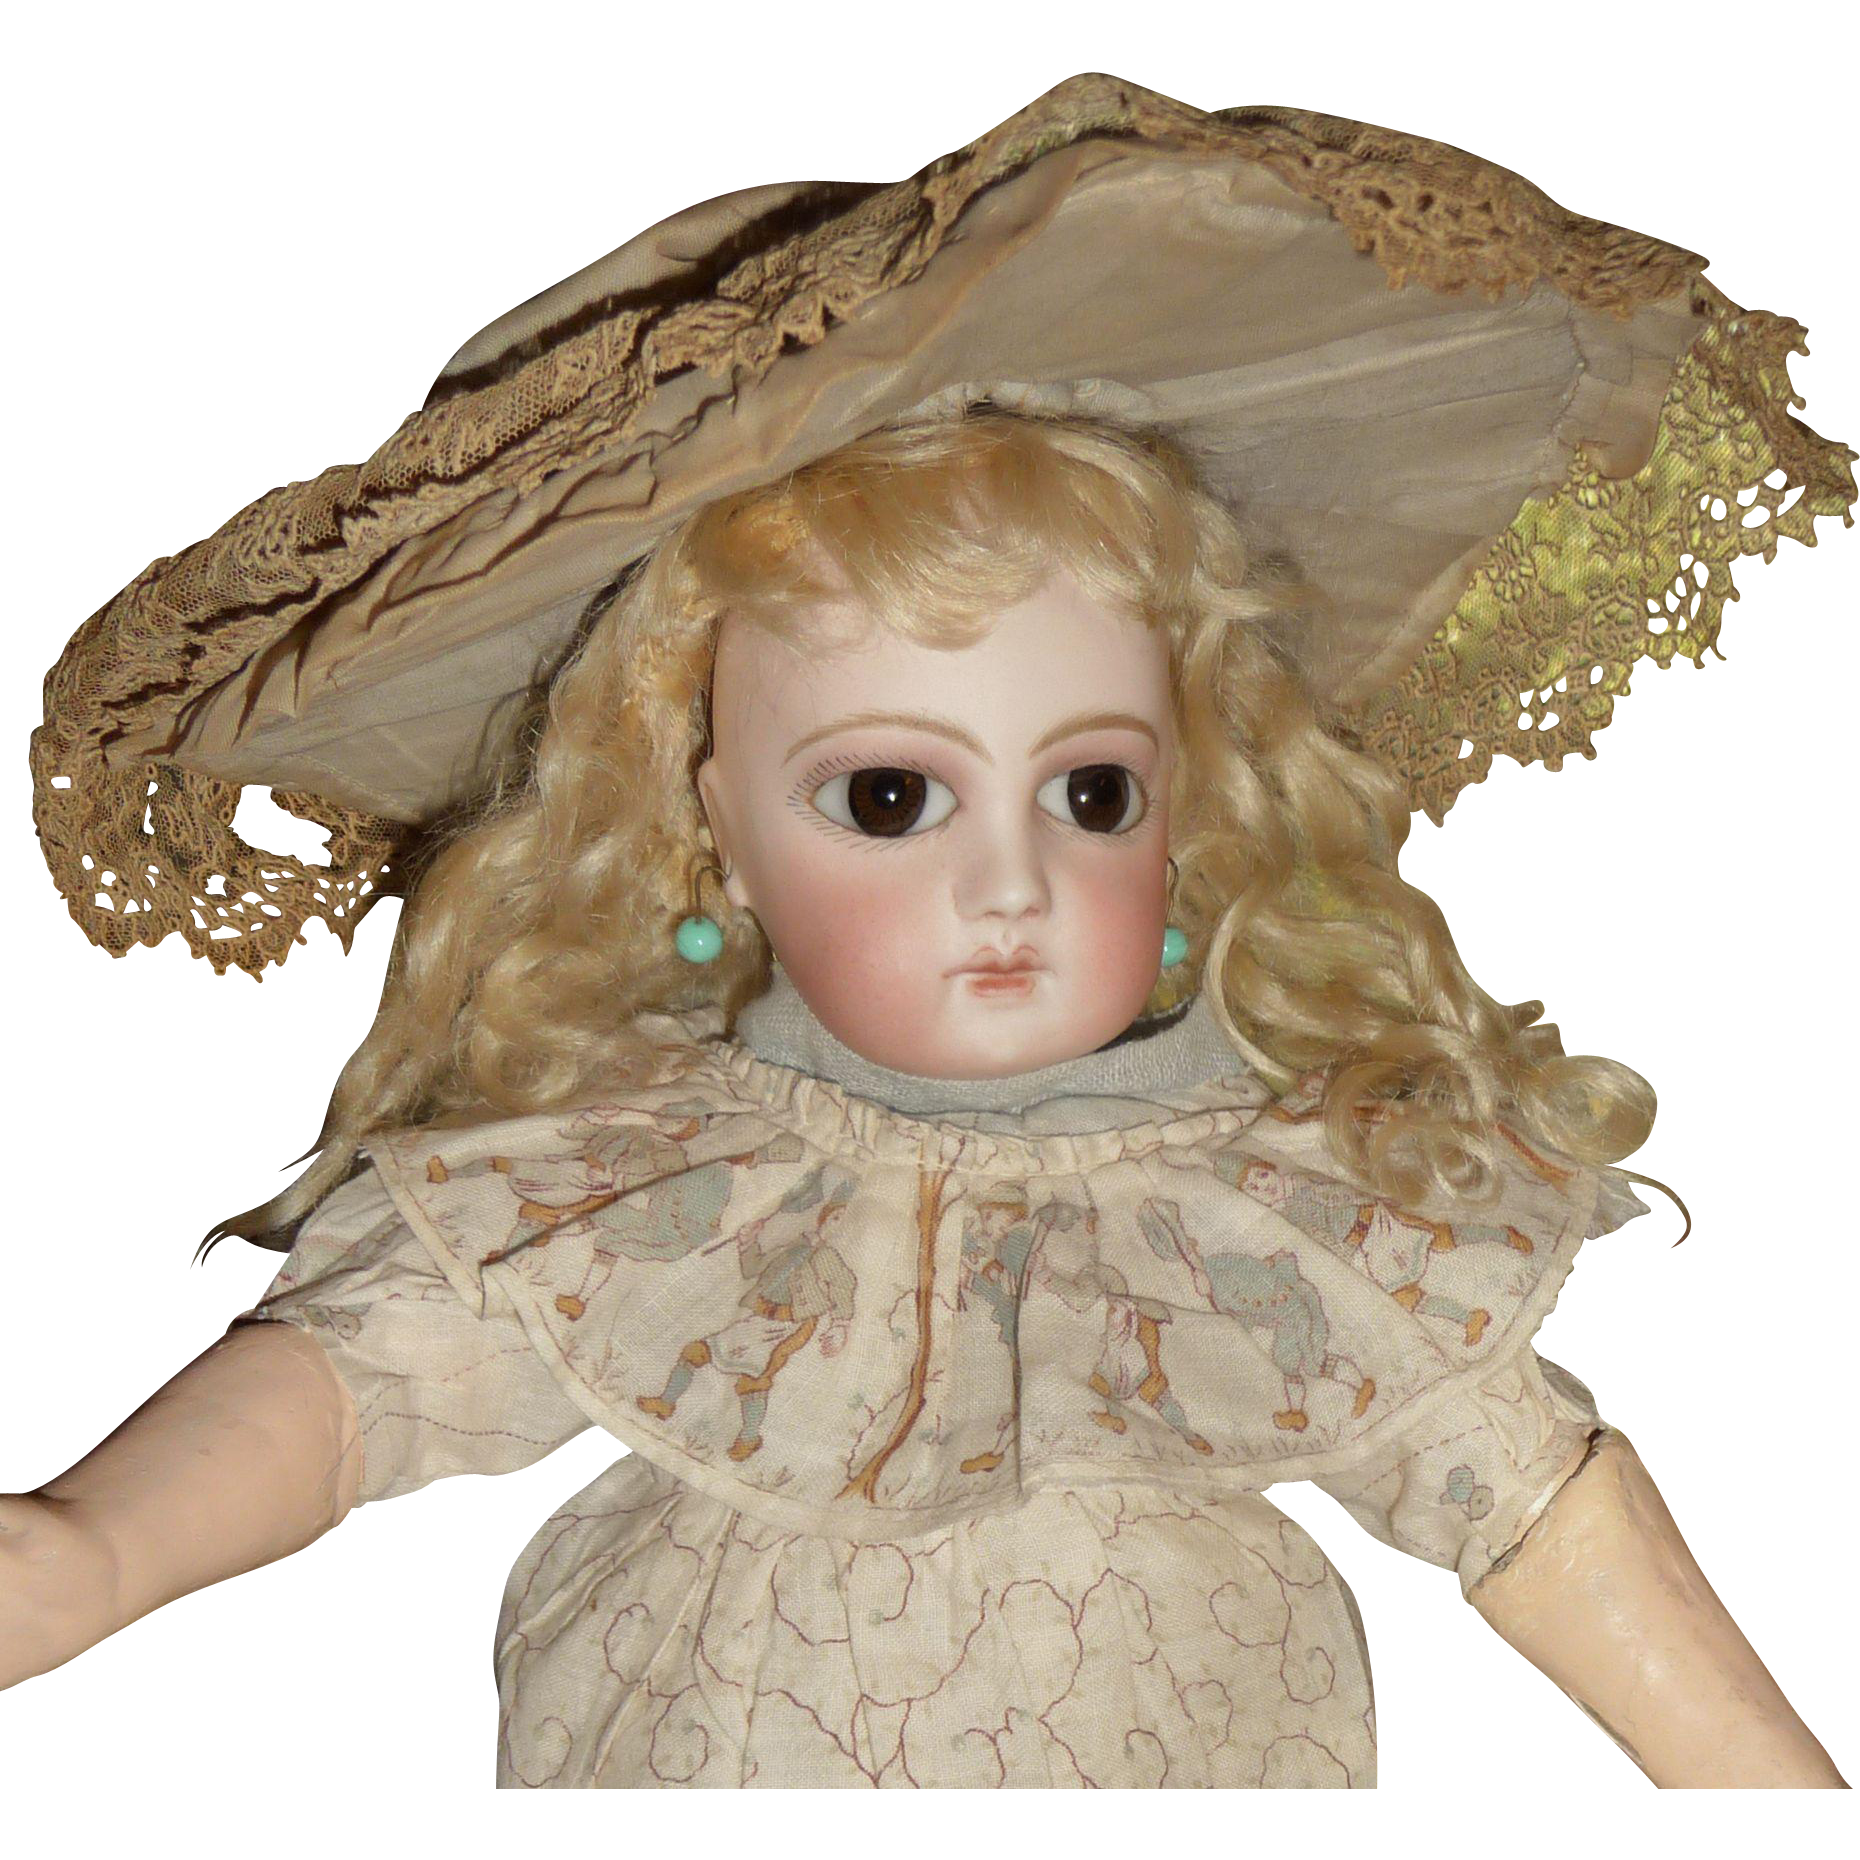 Antique wide brim bonnet for small to medium doll